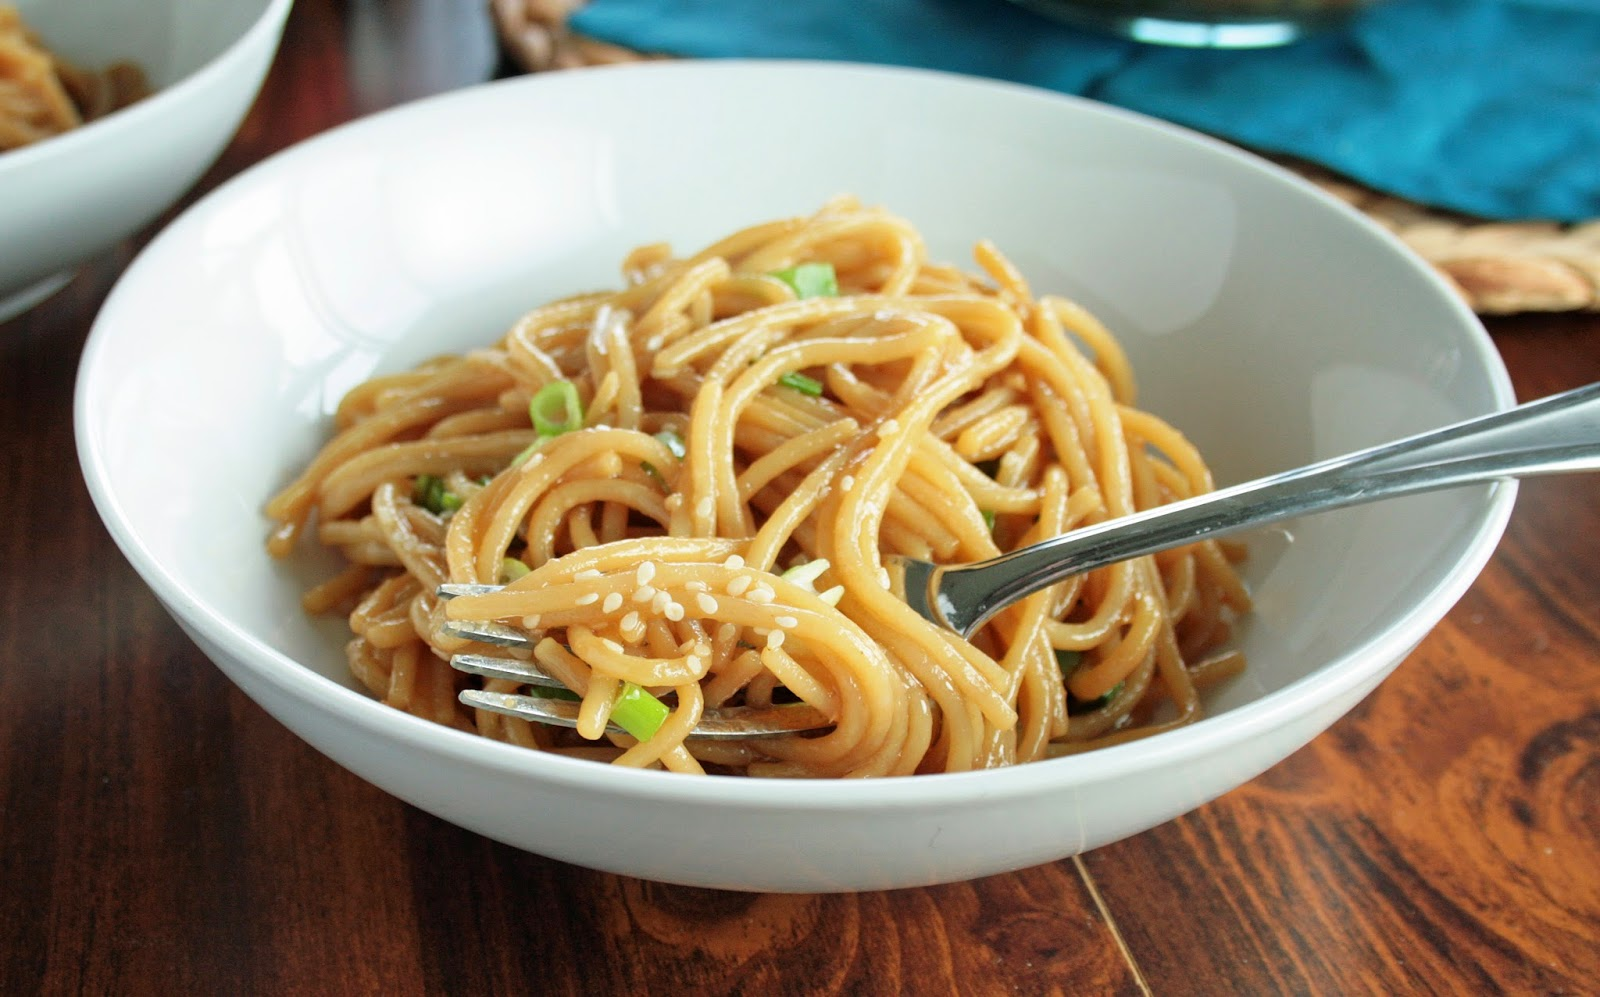 Lazy Gluten Free: Beyond Easy Sesame Noodles